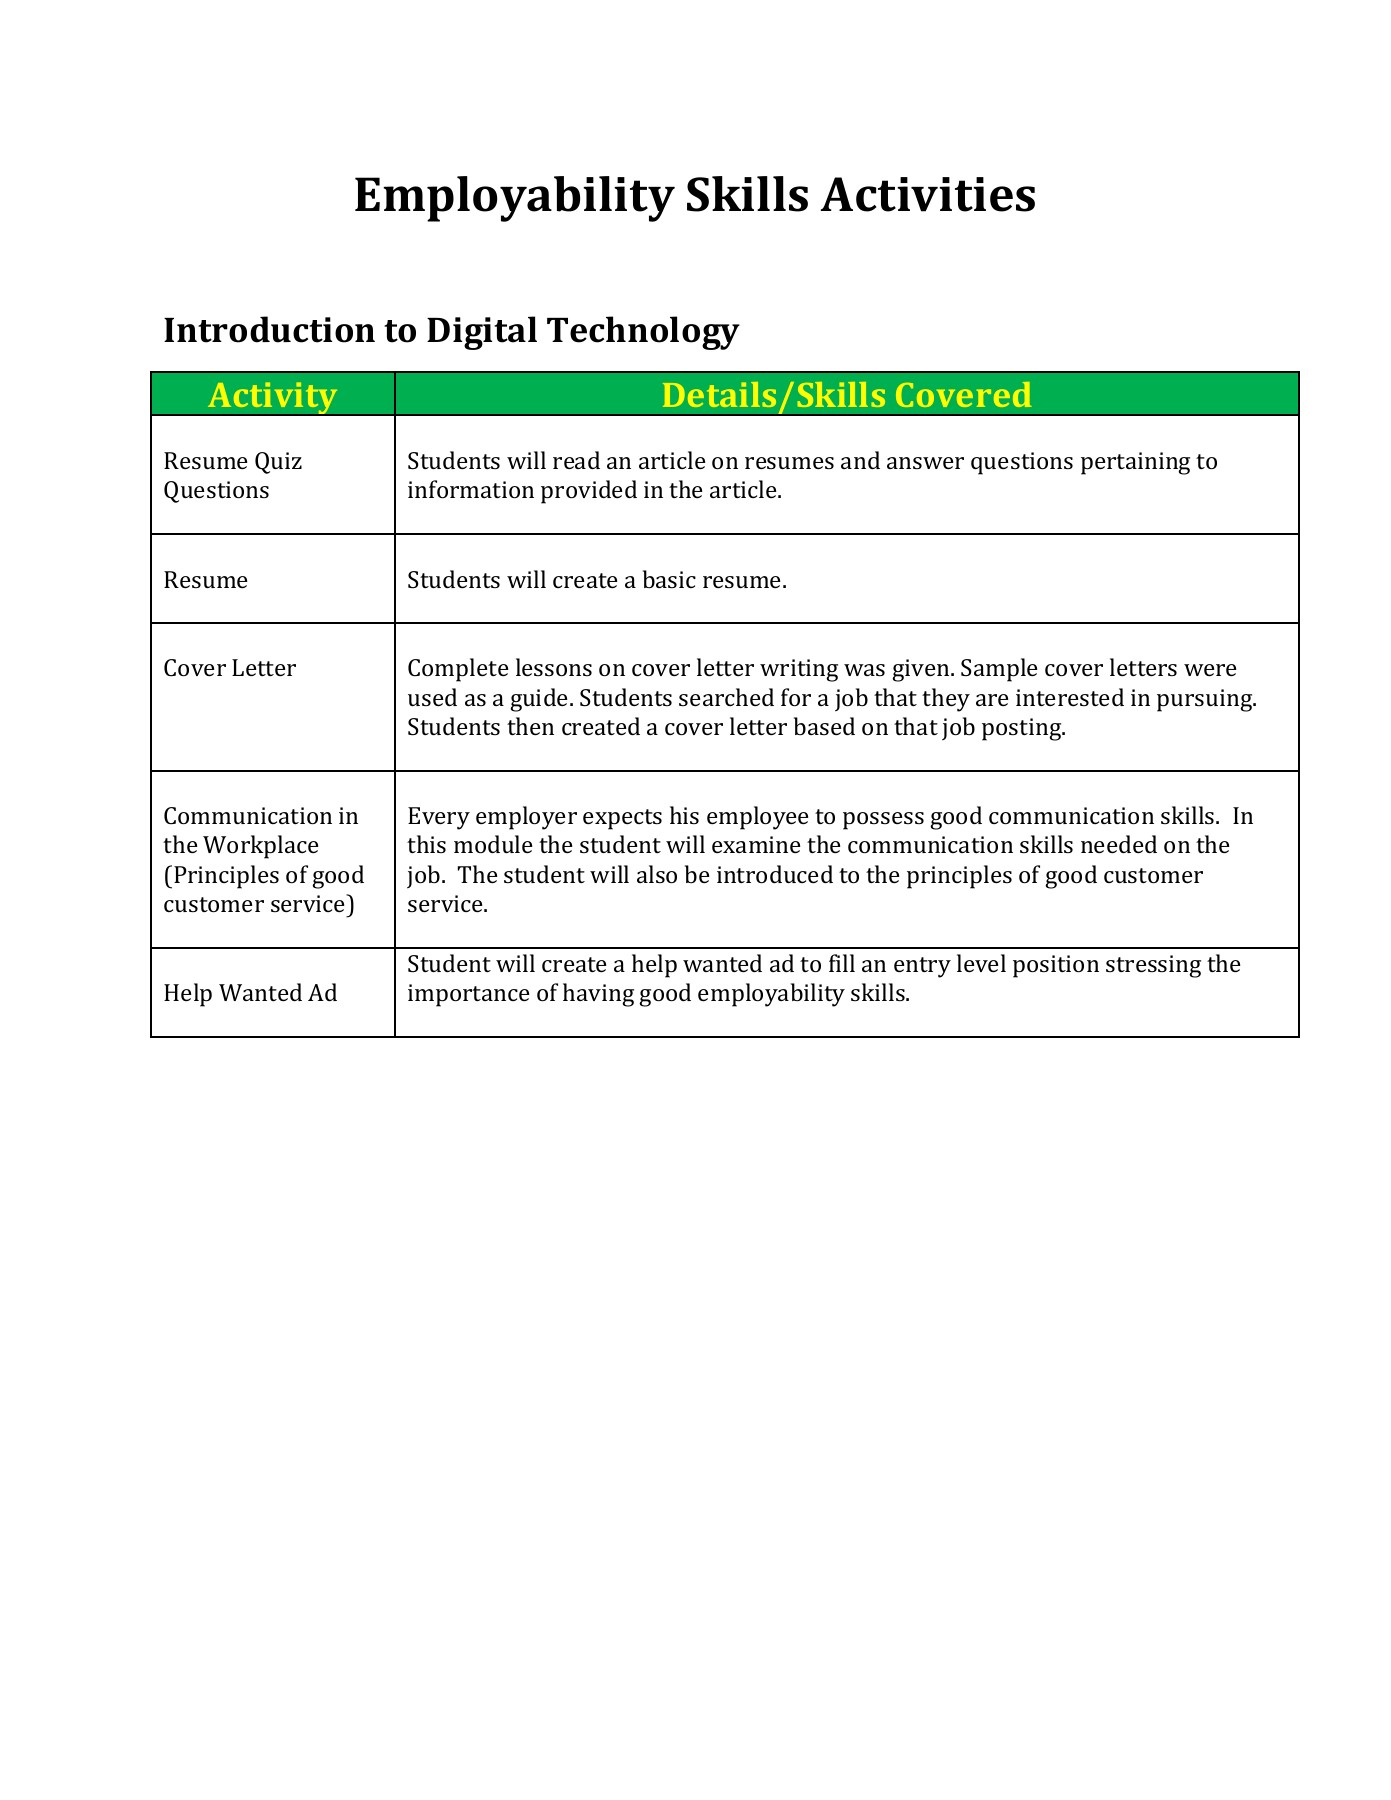 S4-24 Employability Skills-IDT-2017-B Pages 1 - 21 - Text Version